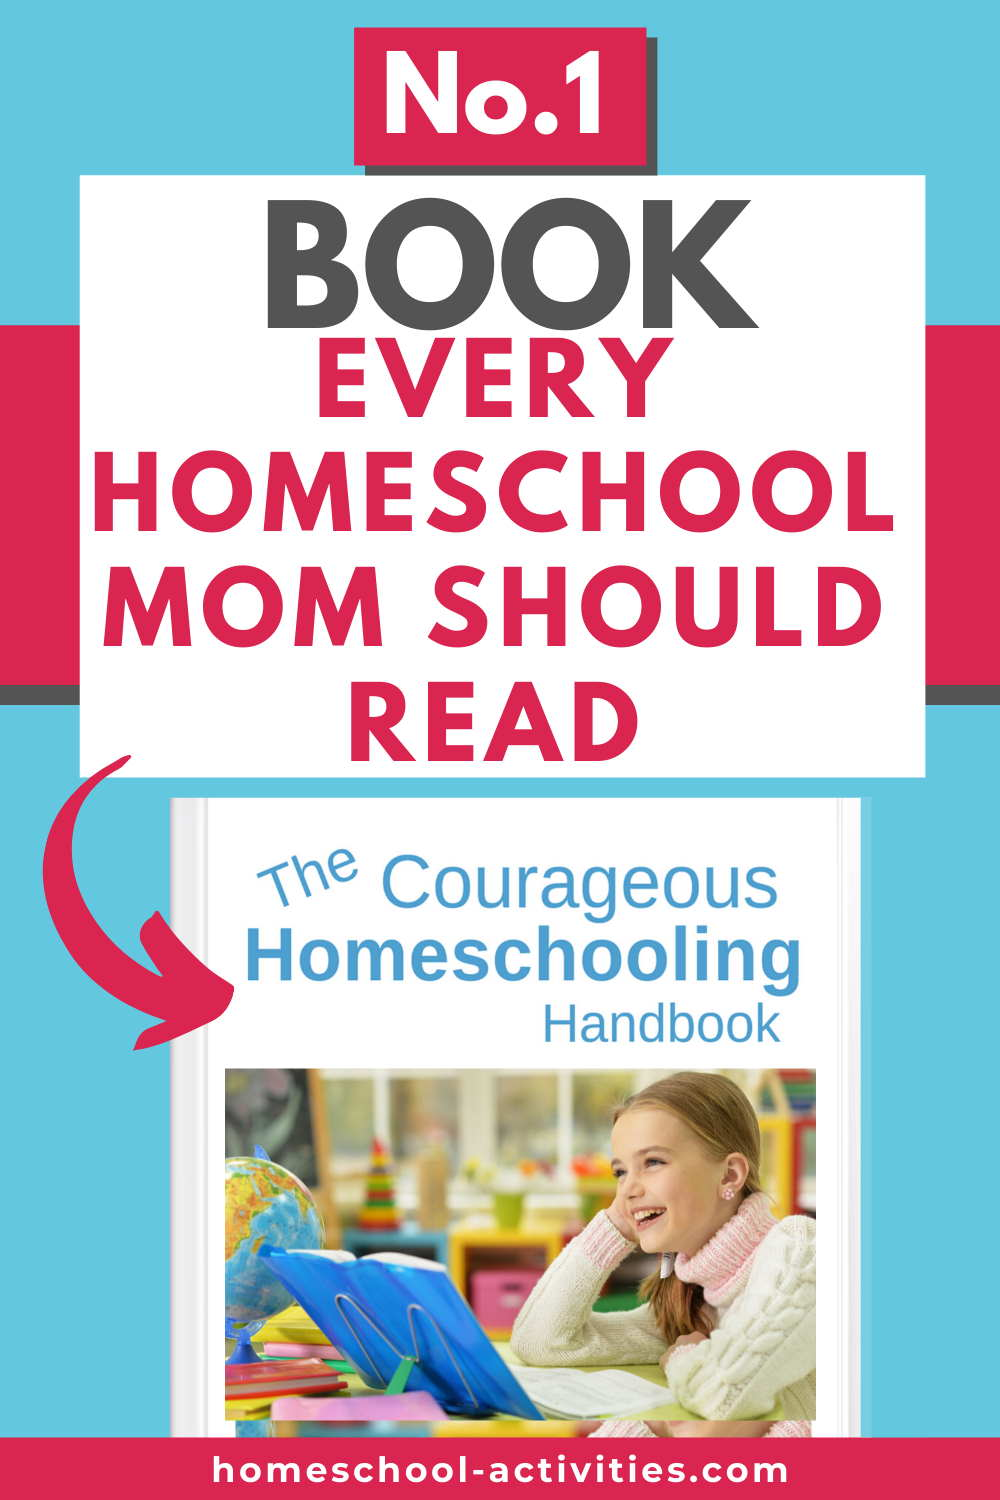 The Courageous Homeschooling Handbook on how to home school